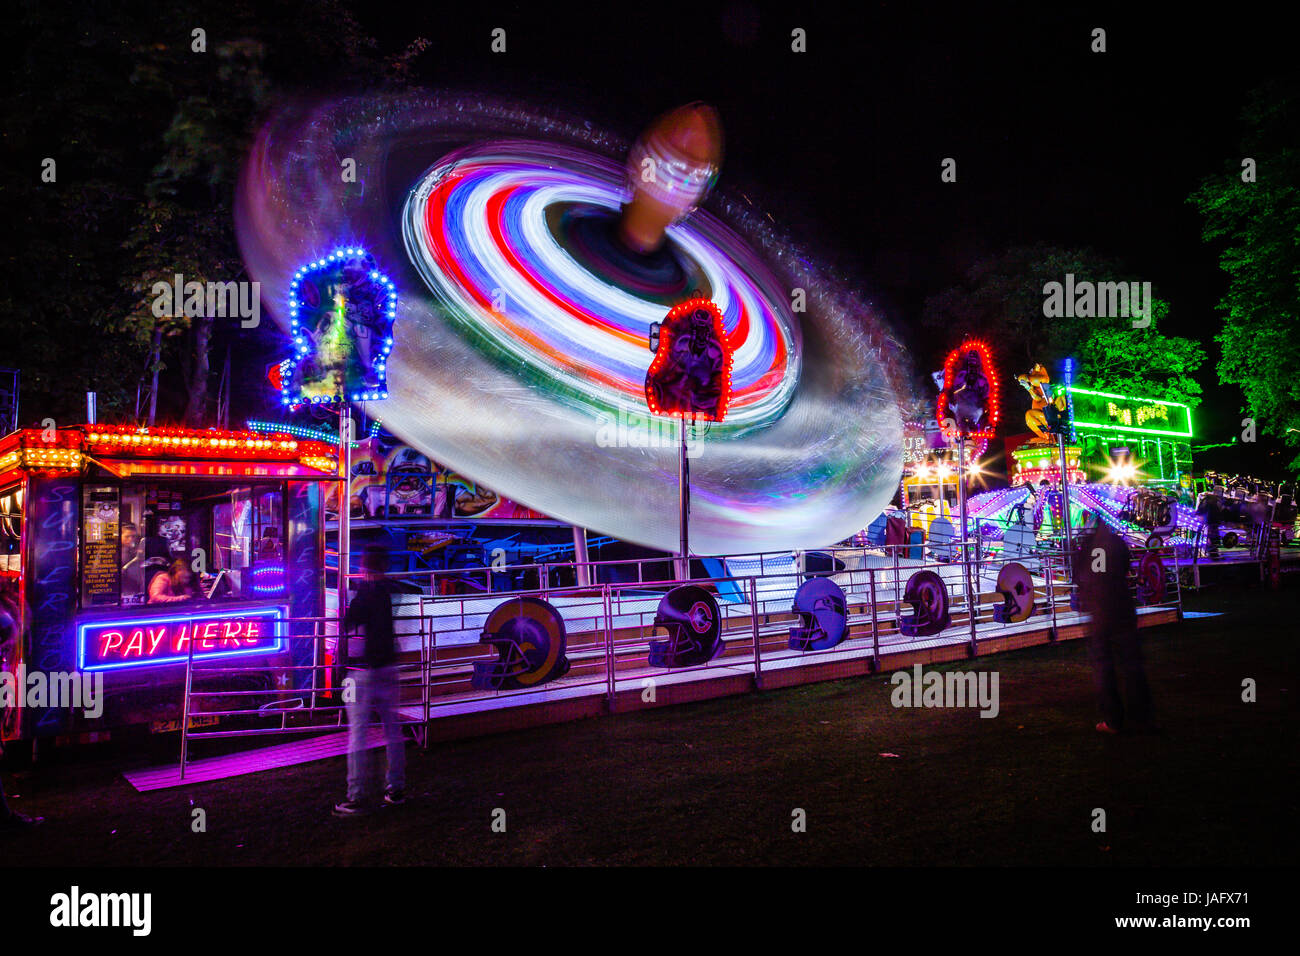 Light trace from 'The Superbowl' fairground ride at Witney Feast. - Stock Image